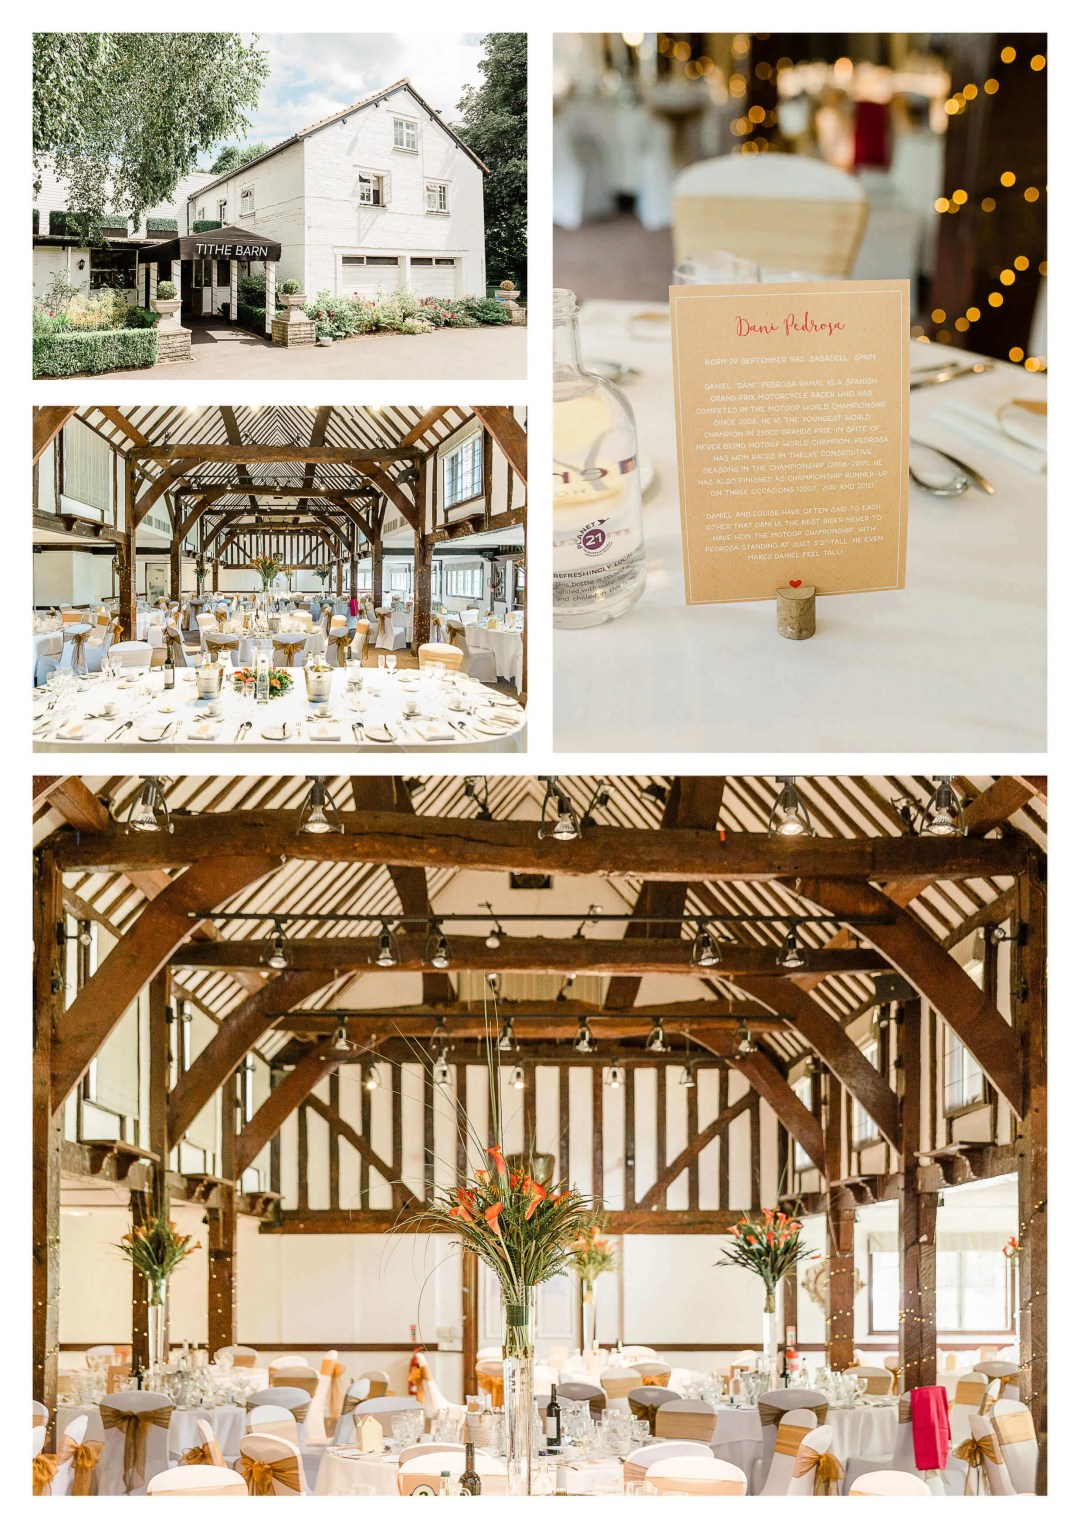 Tithe Barn at Mercure Box Hill Burford Bridge Hotel wedding venue motorcycle race theme